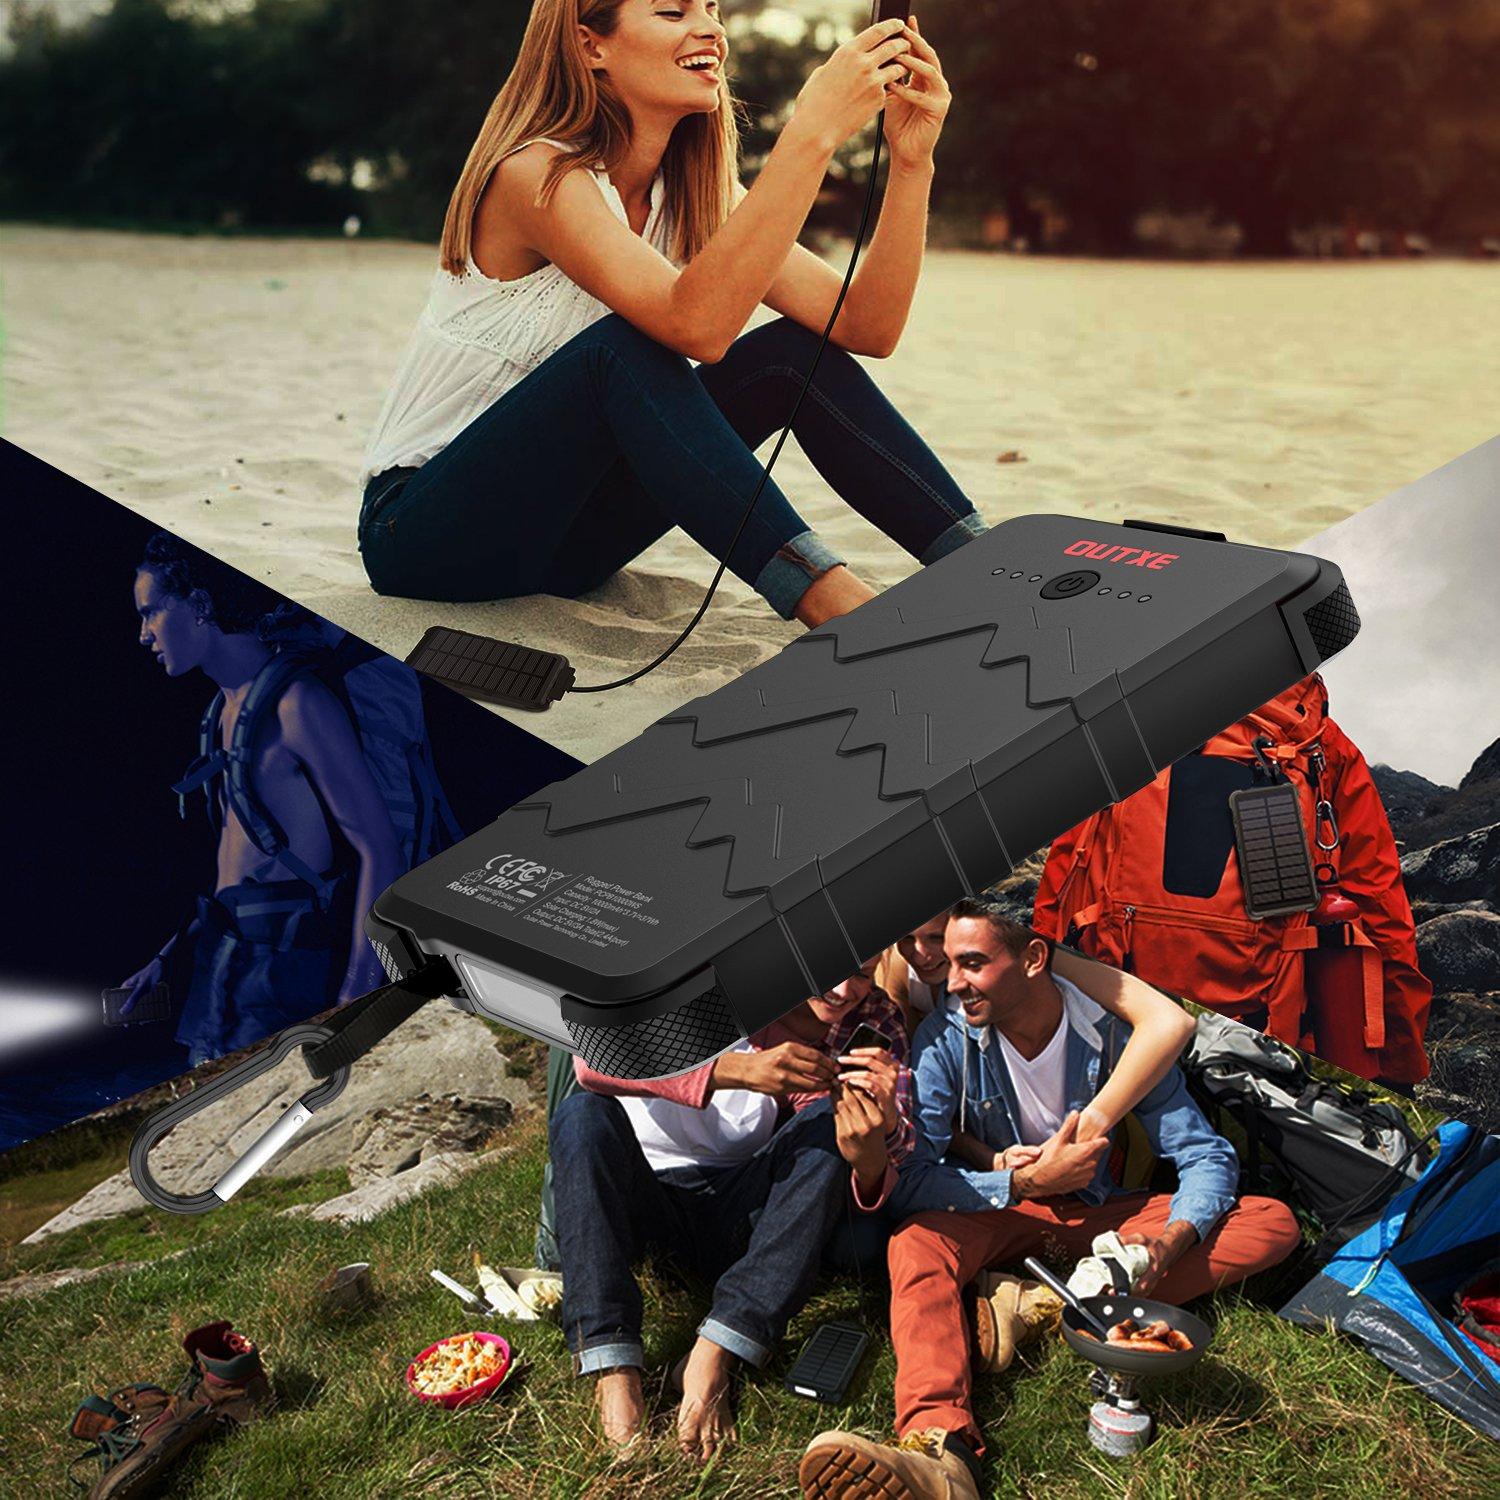 OUTXE 10000mAh Rugged Solar Power Bank with Flashlight IP67 Waterproof Portable Charger Outdoor